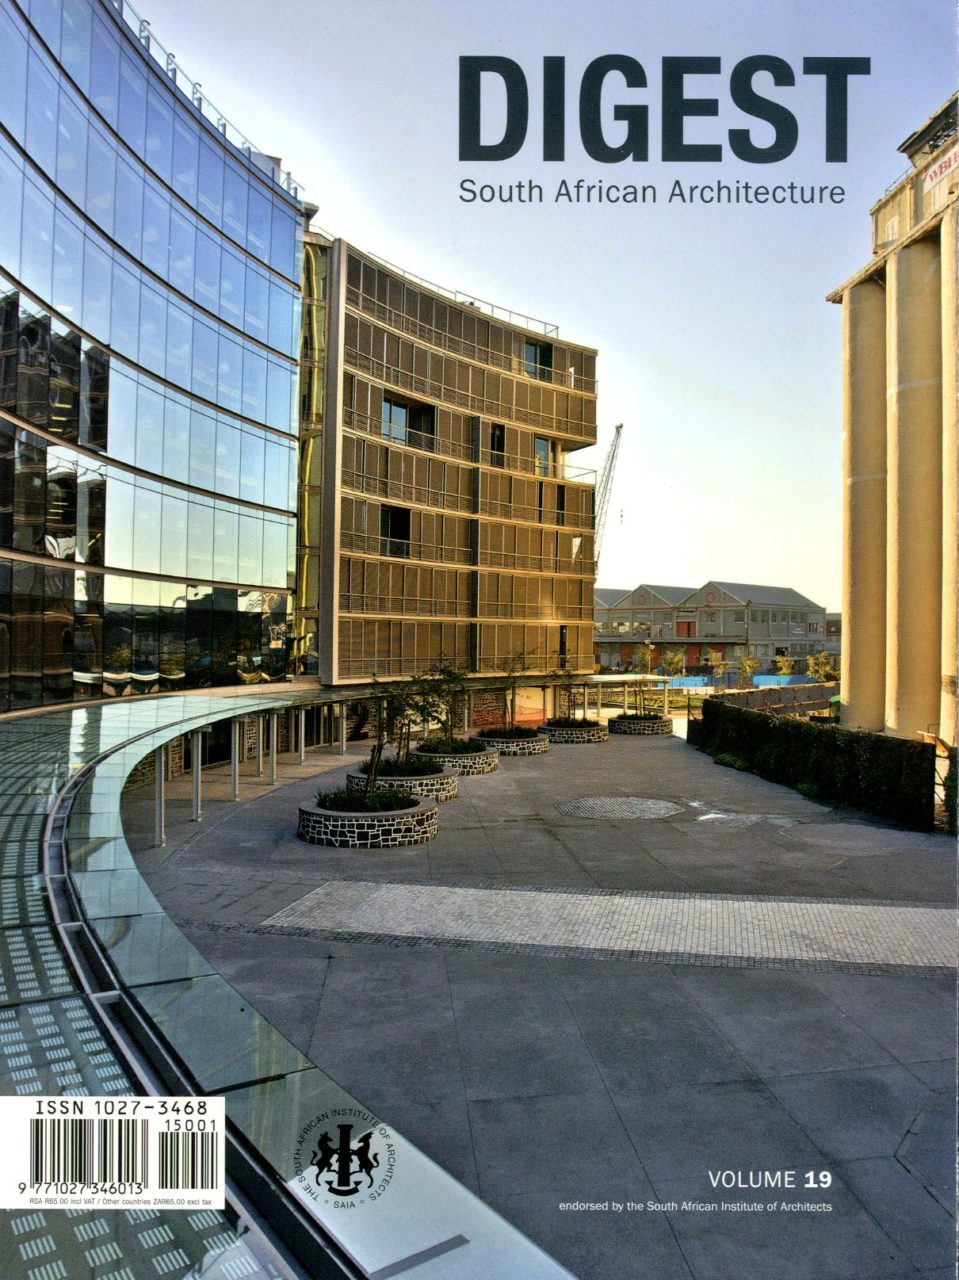 https://www.saota.com/wp-content/uploads/2018/01/Digest-of-SA-Architecture_Volume-19_2014-.jpg